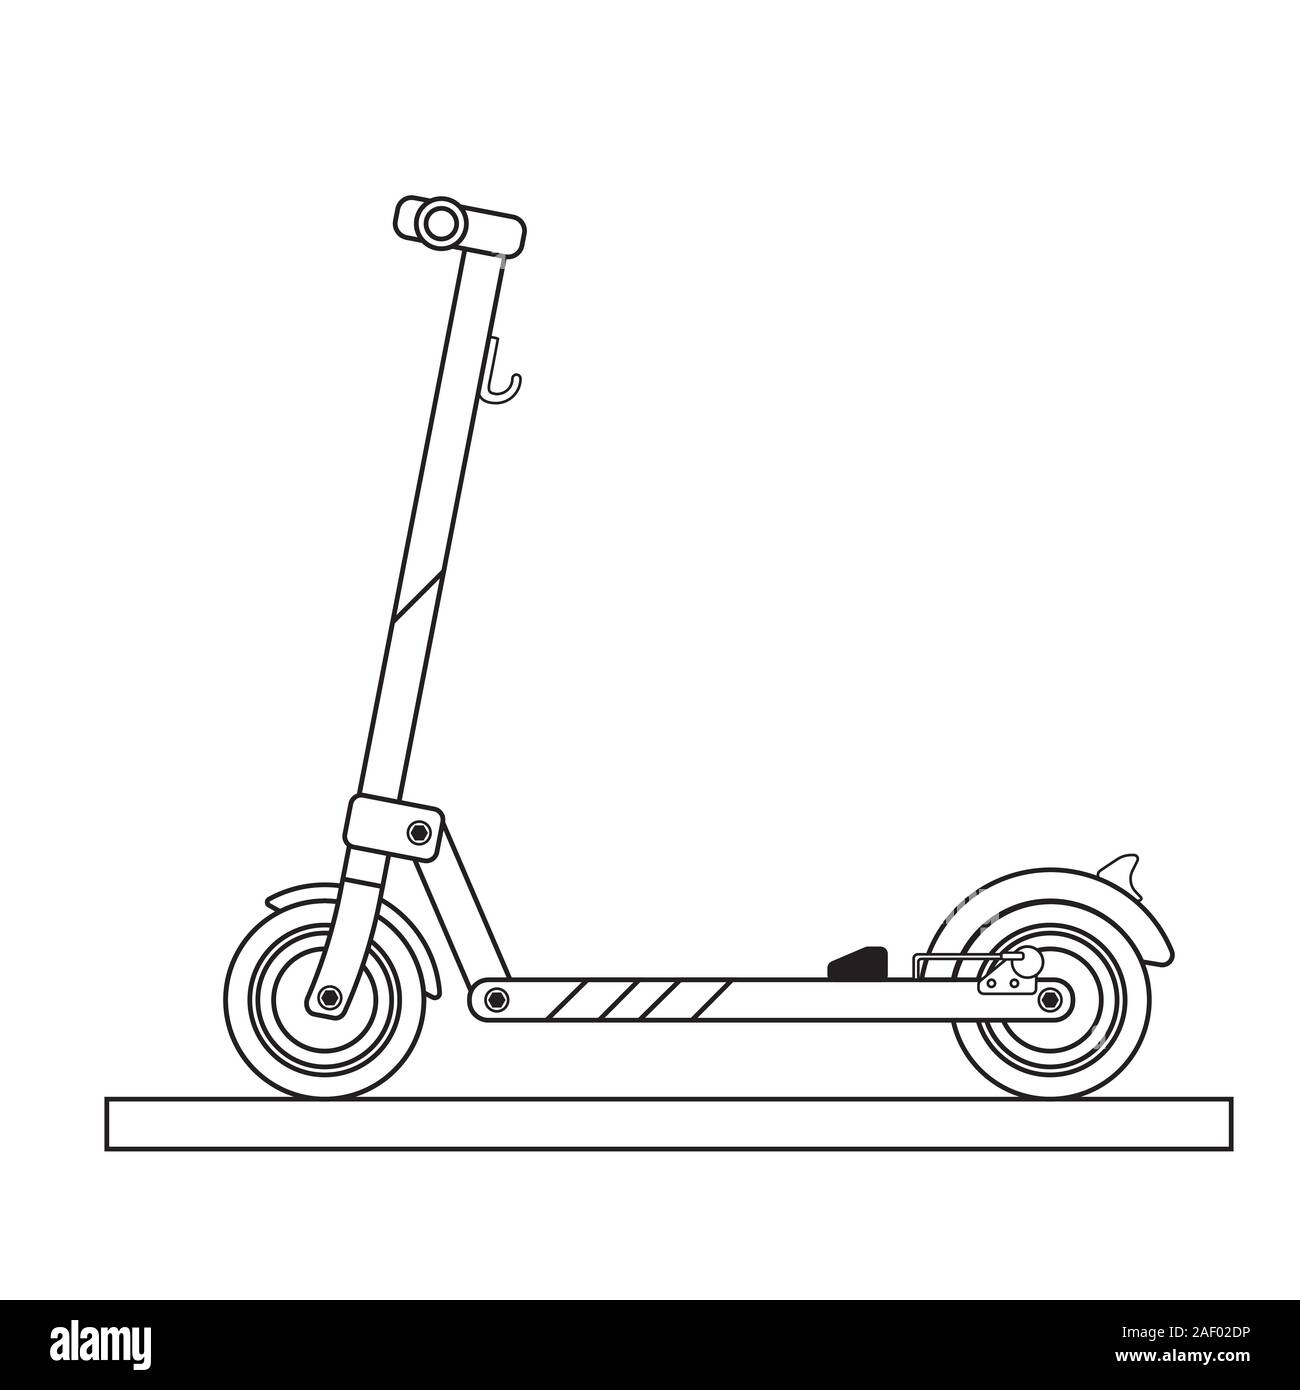 Modern Electric Kick Scooter Drawn In Line Art Style Stock Vector Image Art Alamy